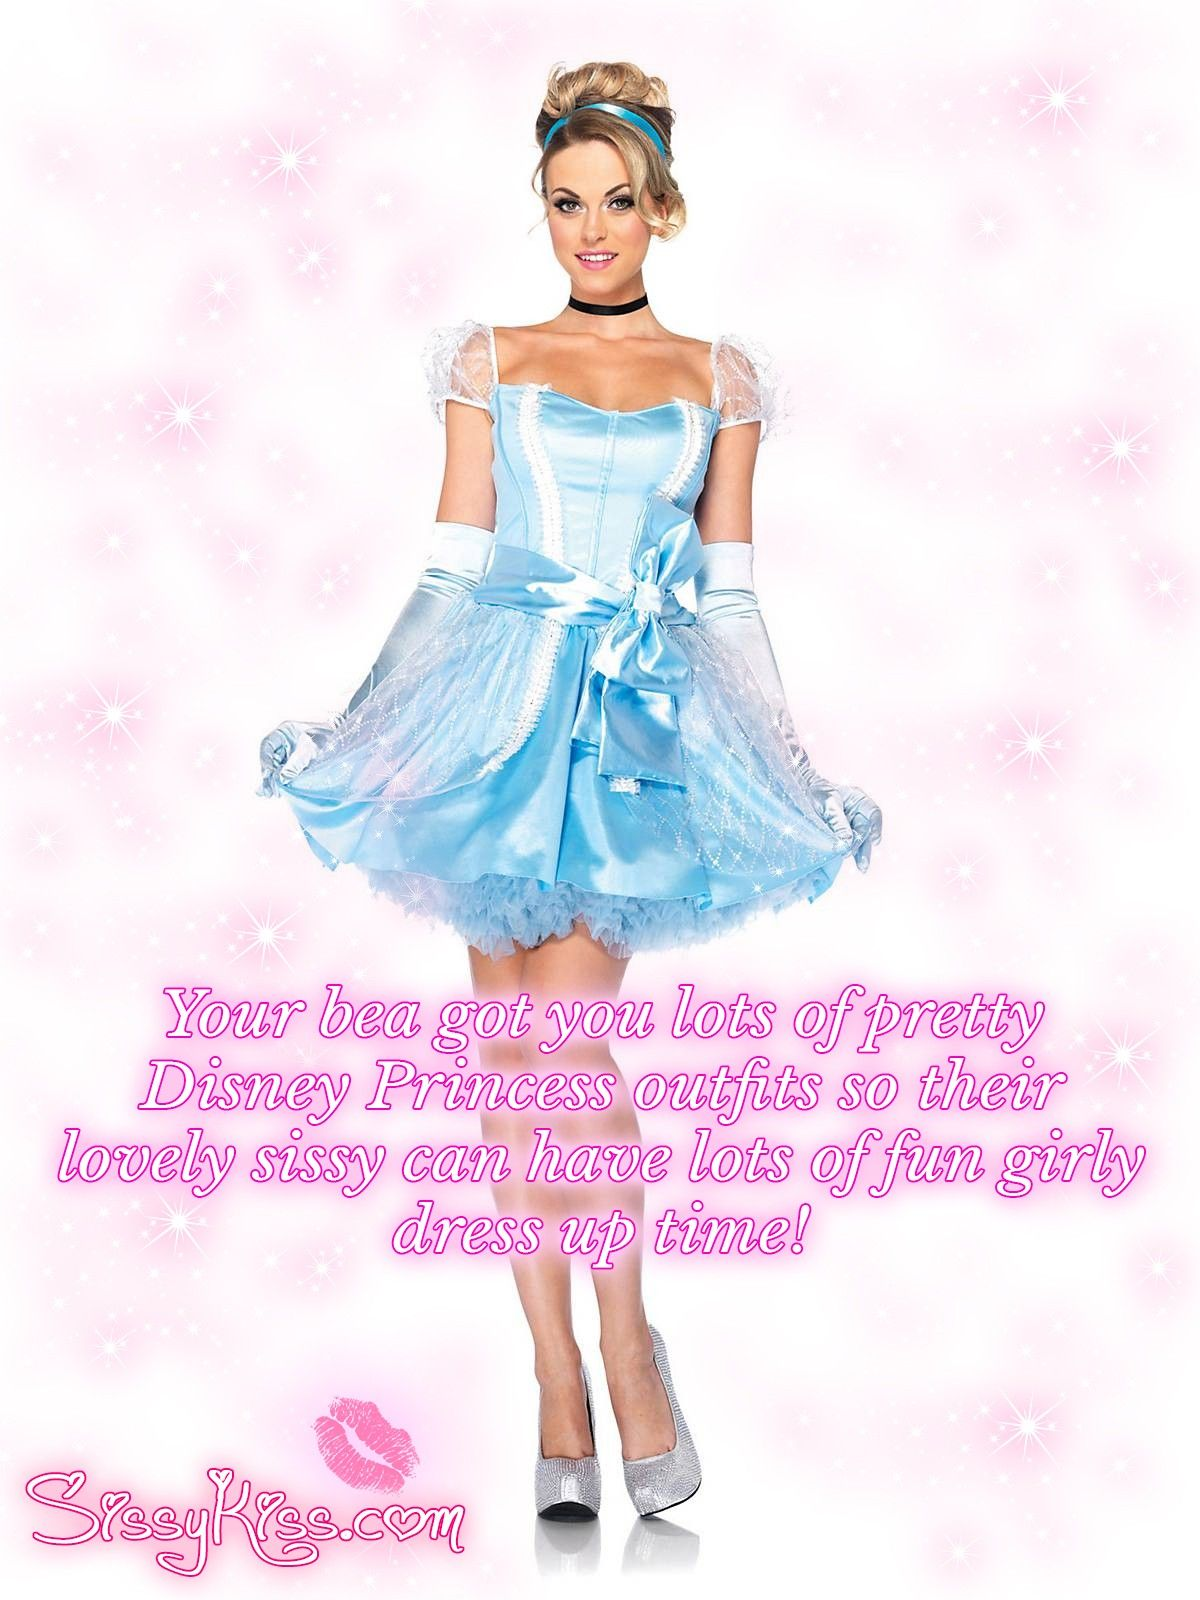 Pin by Norma Oestreic on Sissy captions | Pinterest | Captions ...